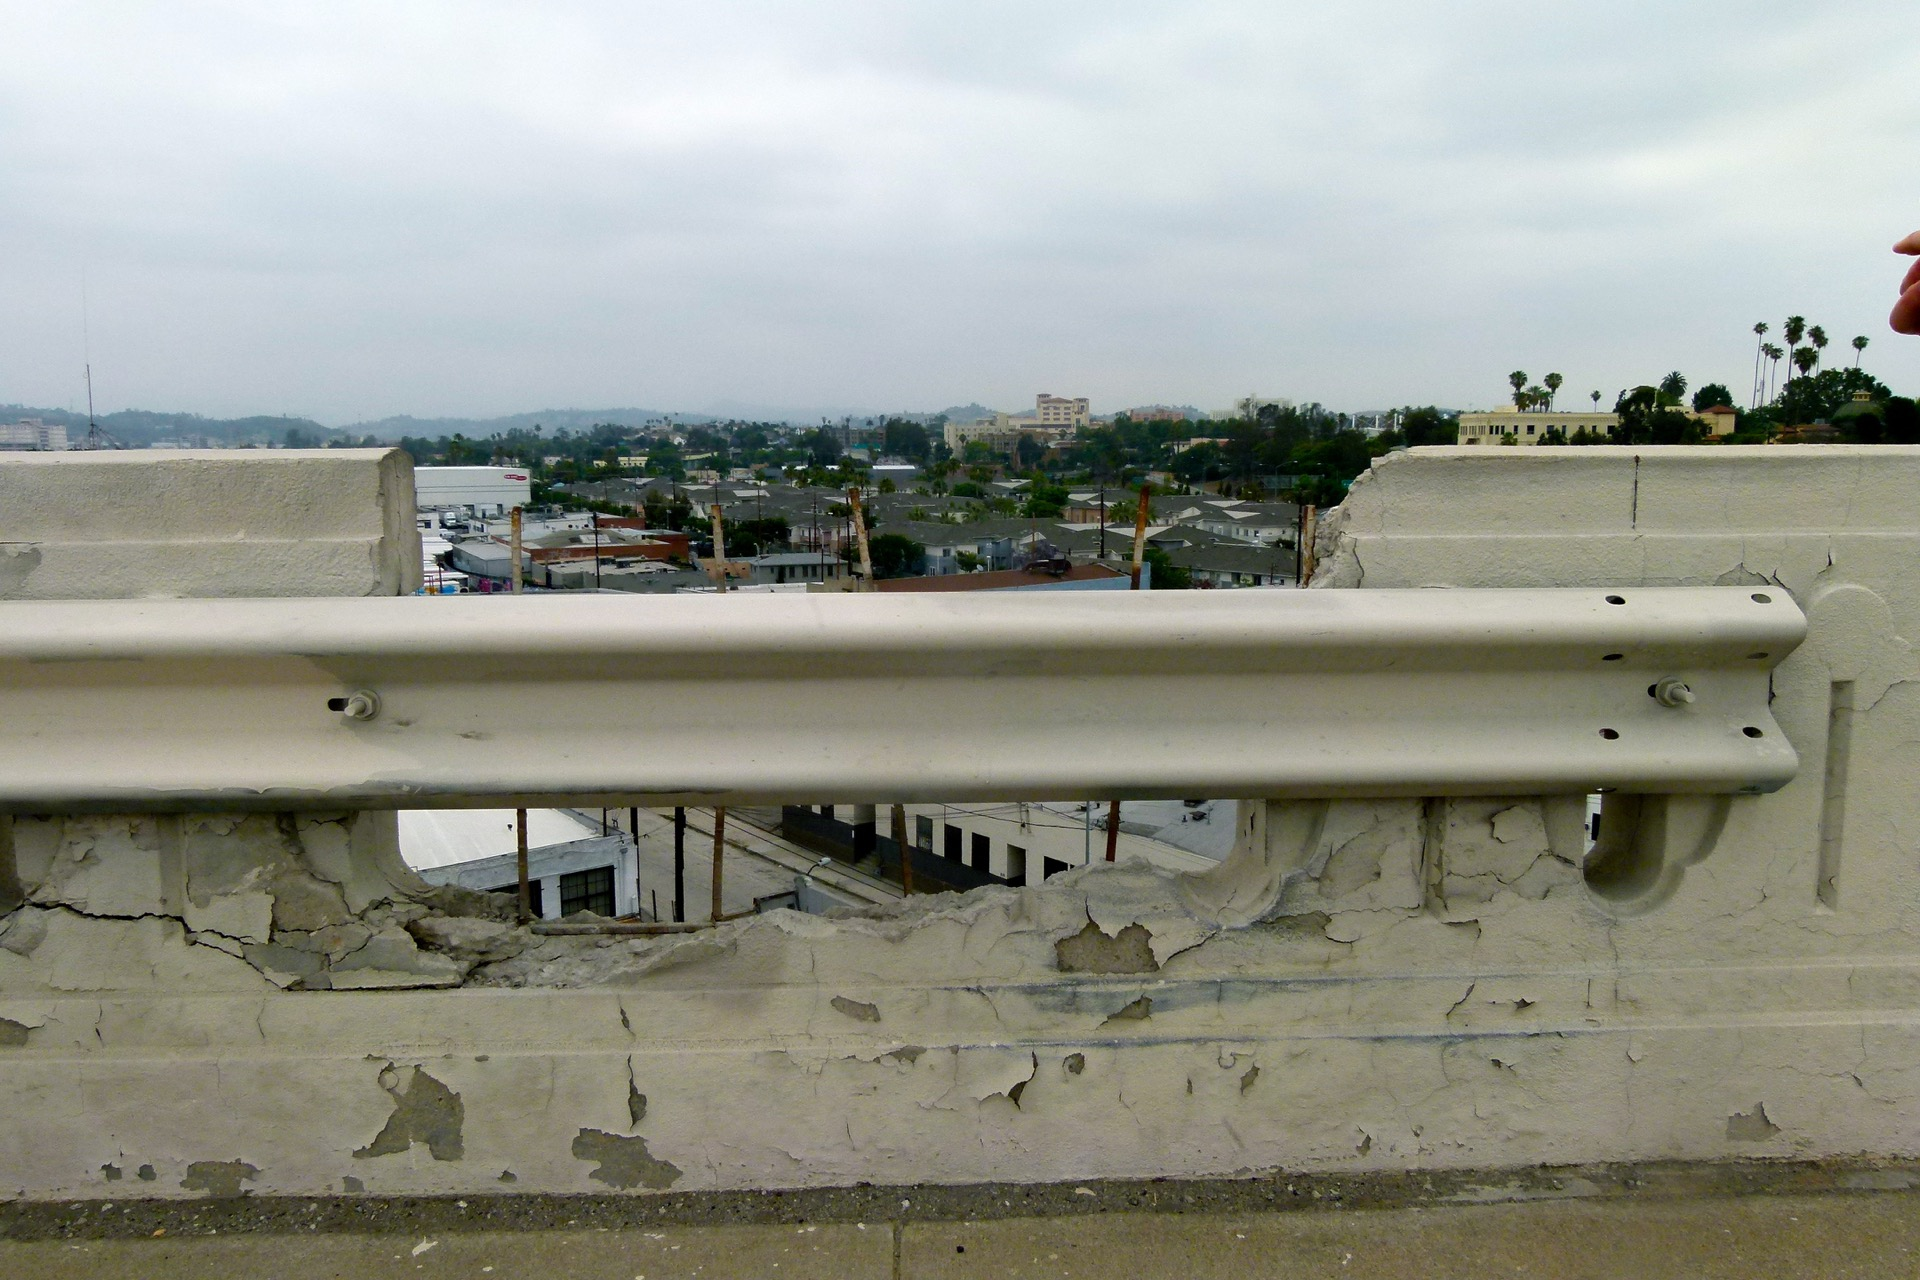 6th_street_bridge_020.jpg